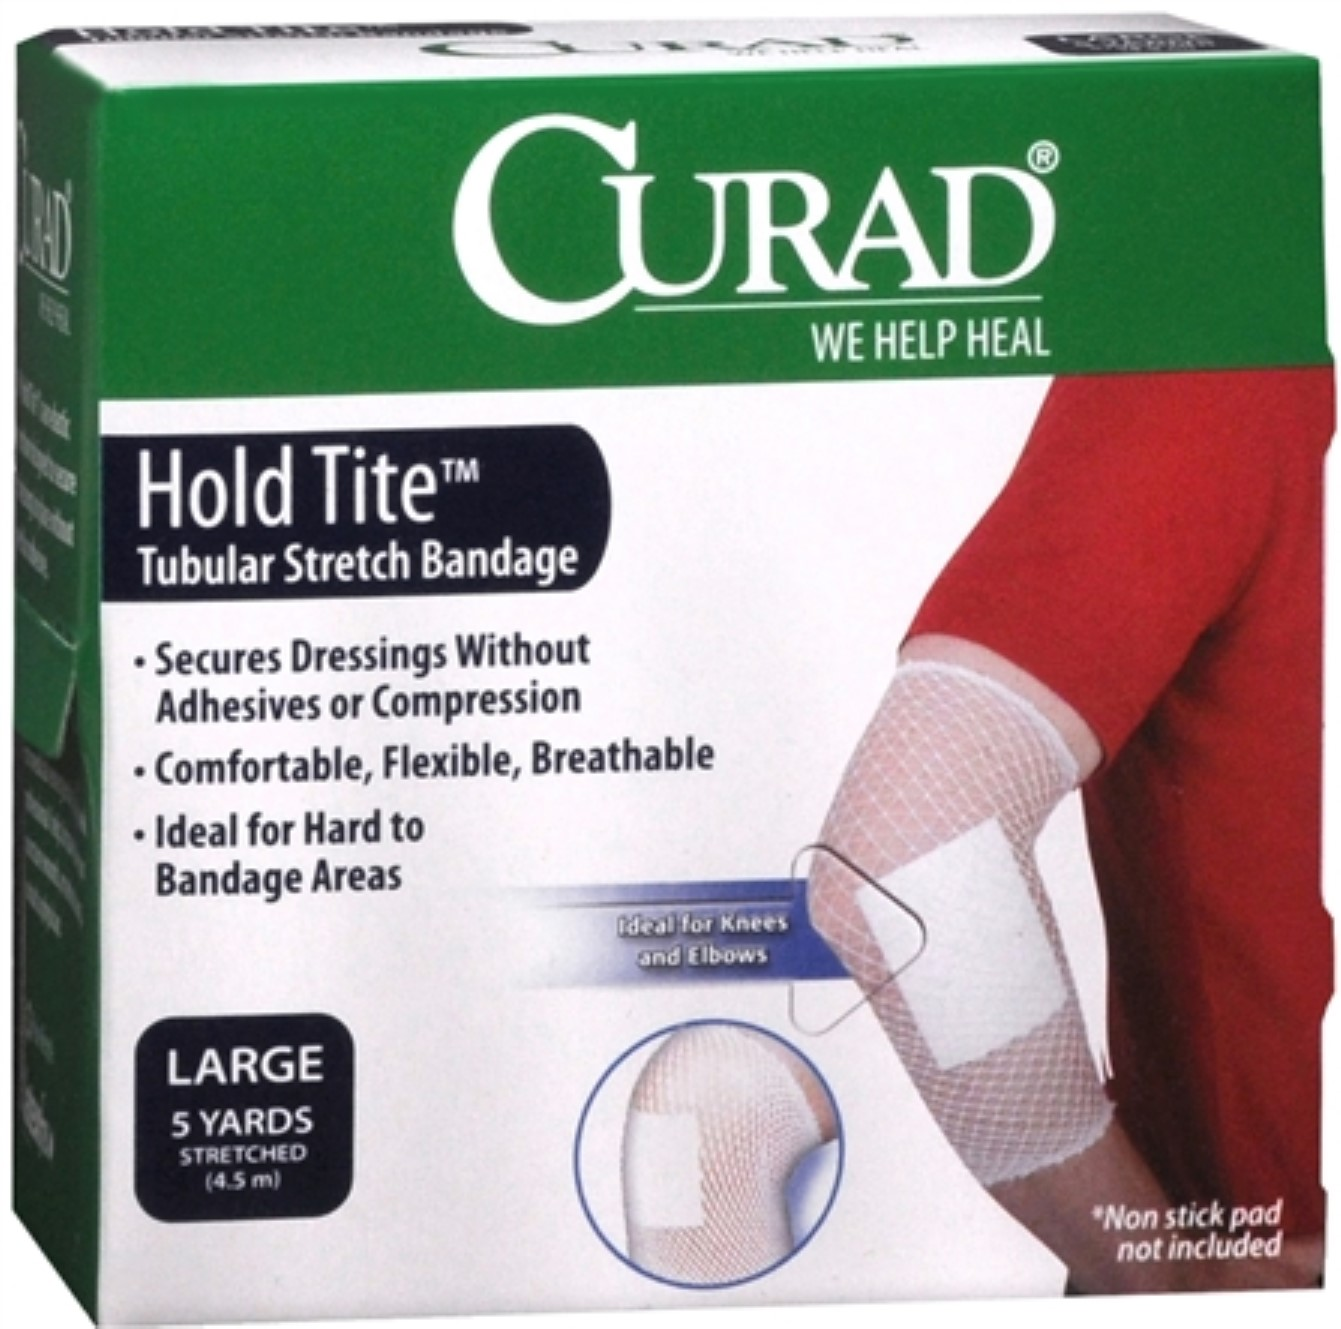 4 Pack - Curad Hold Tite Tubular Stretch Bandage Large 1 Each